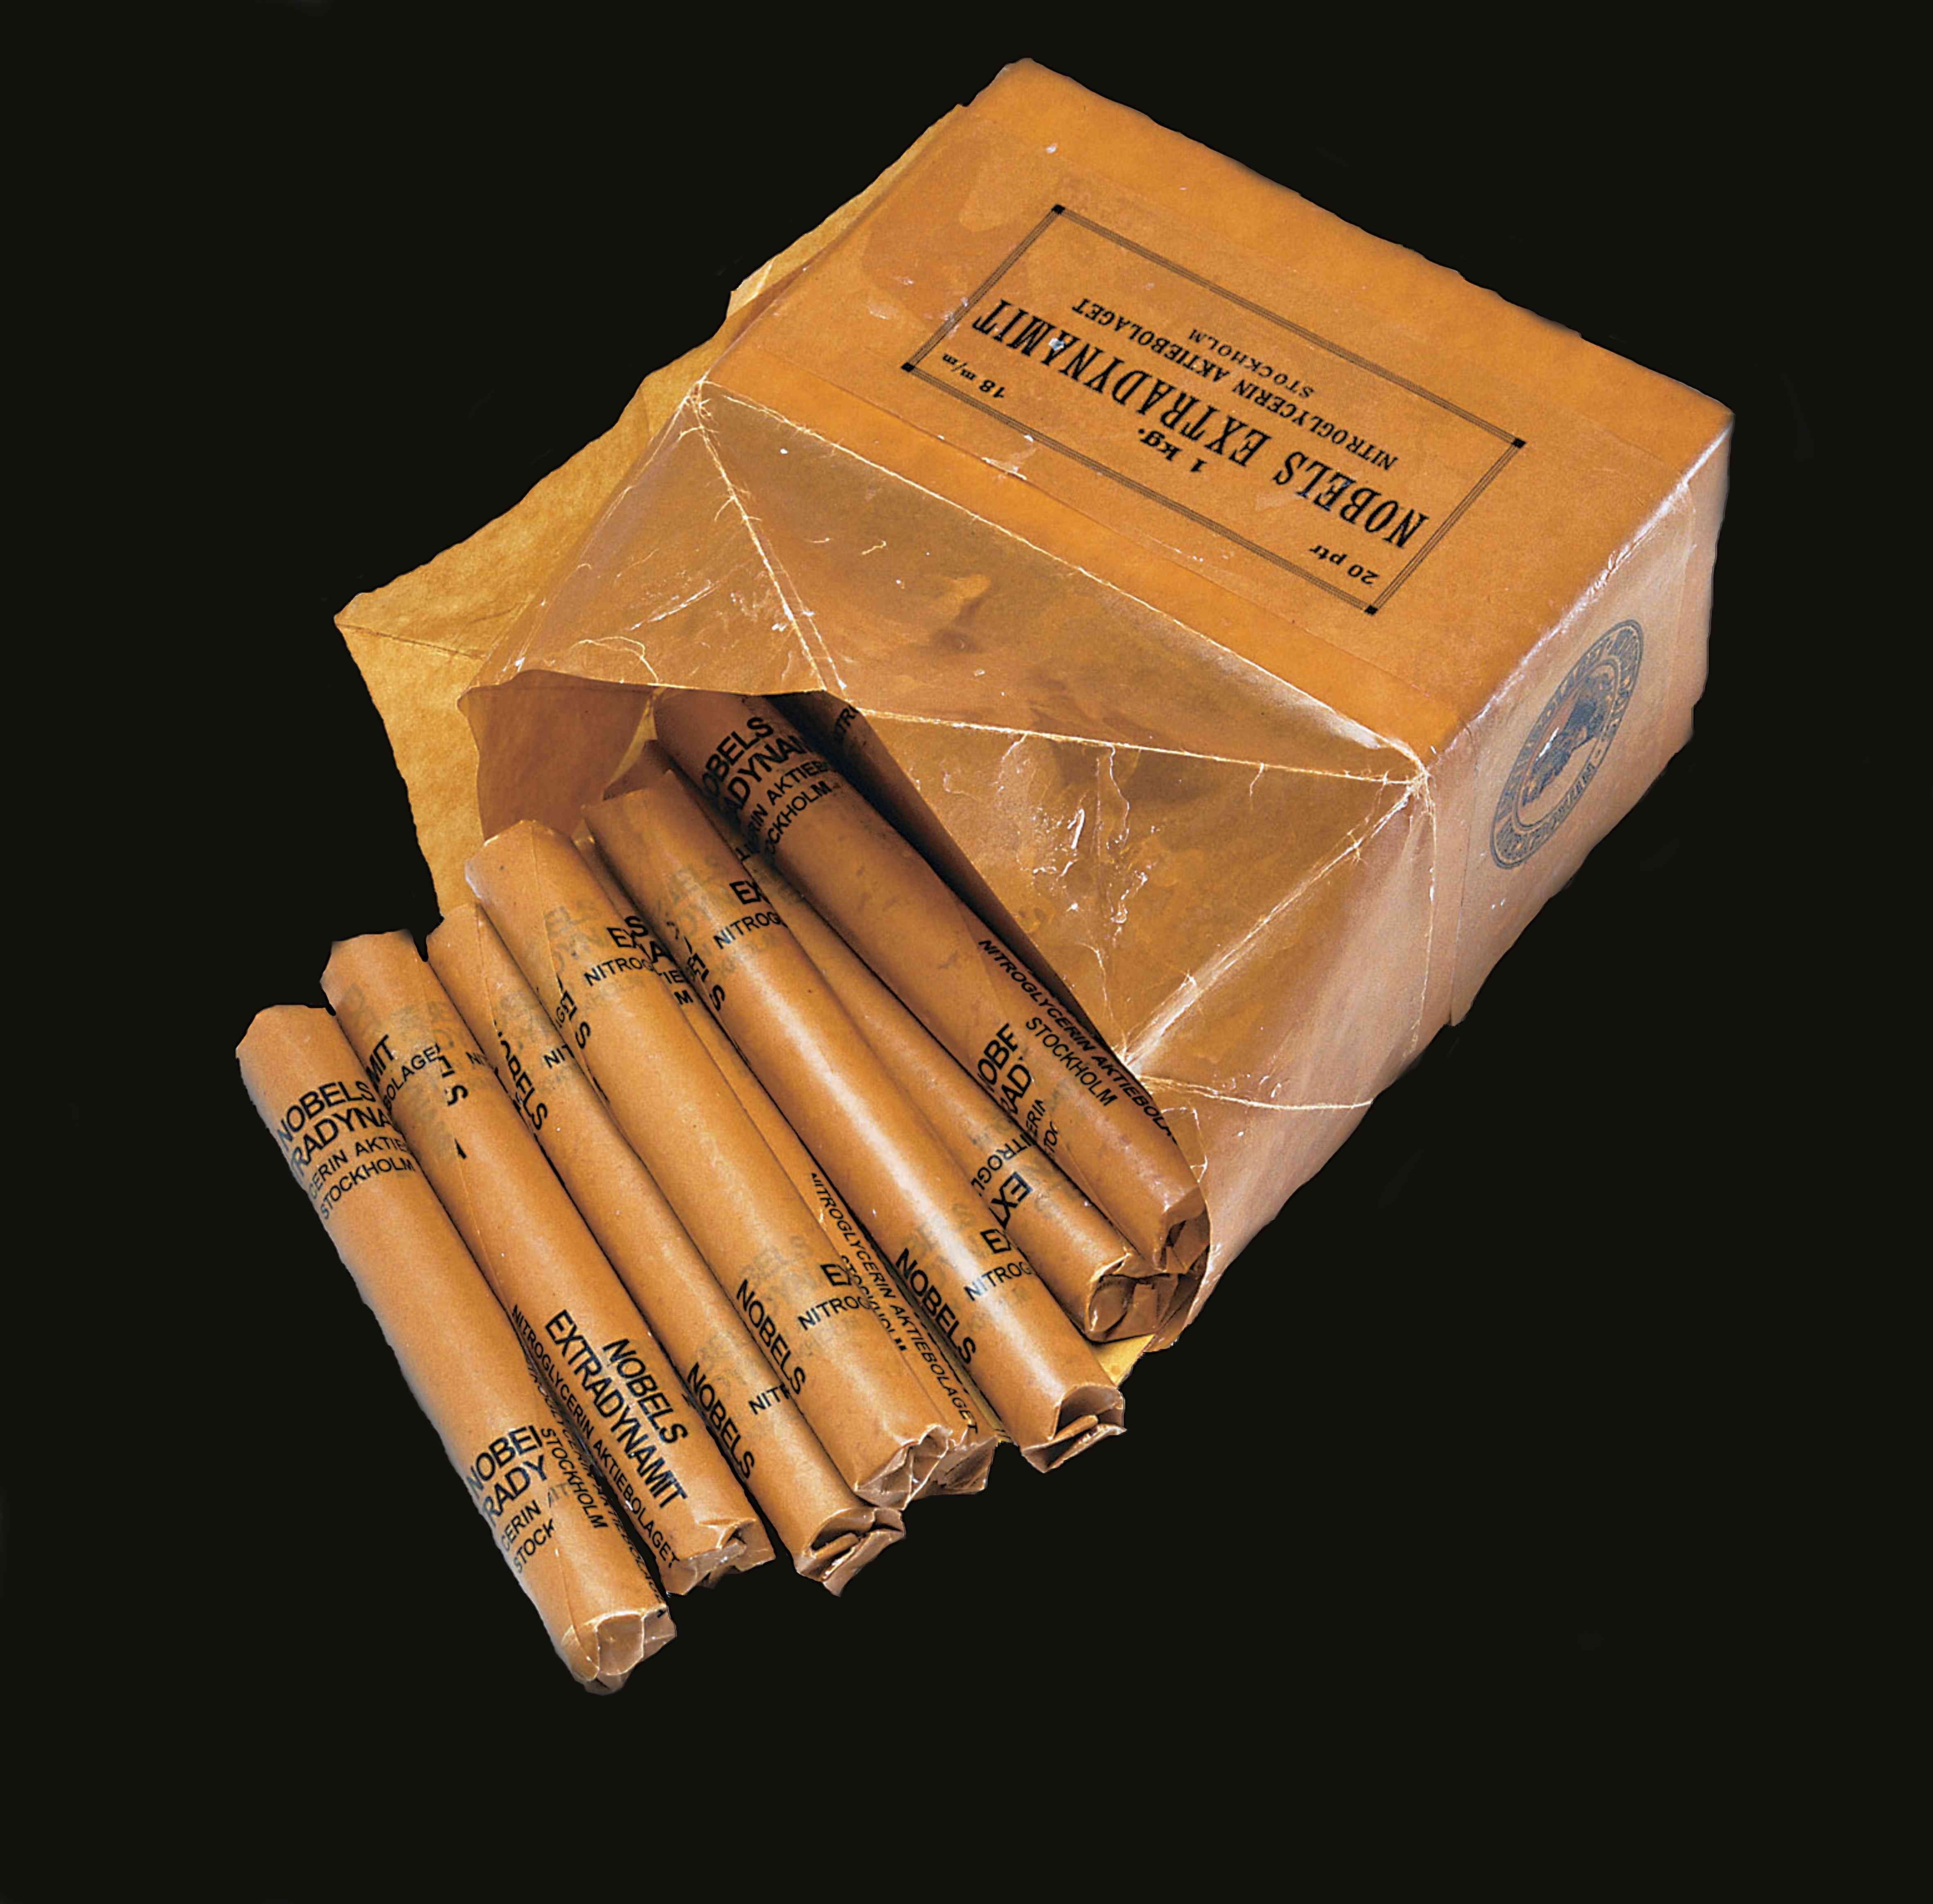 Box containing several sticks of Alfred Nobel's Extradynamit dynamite